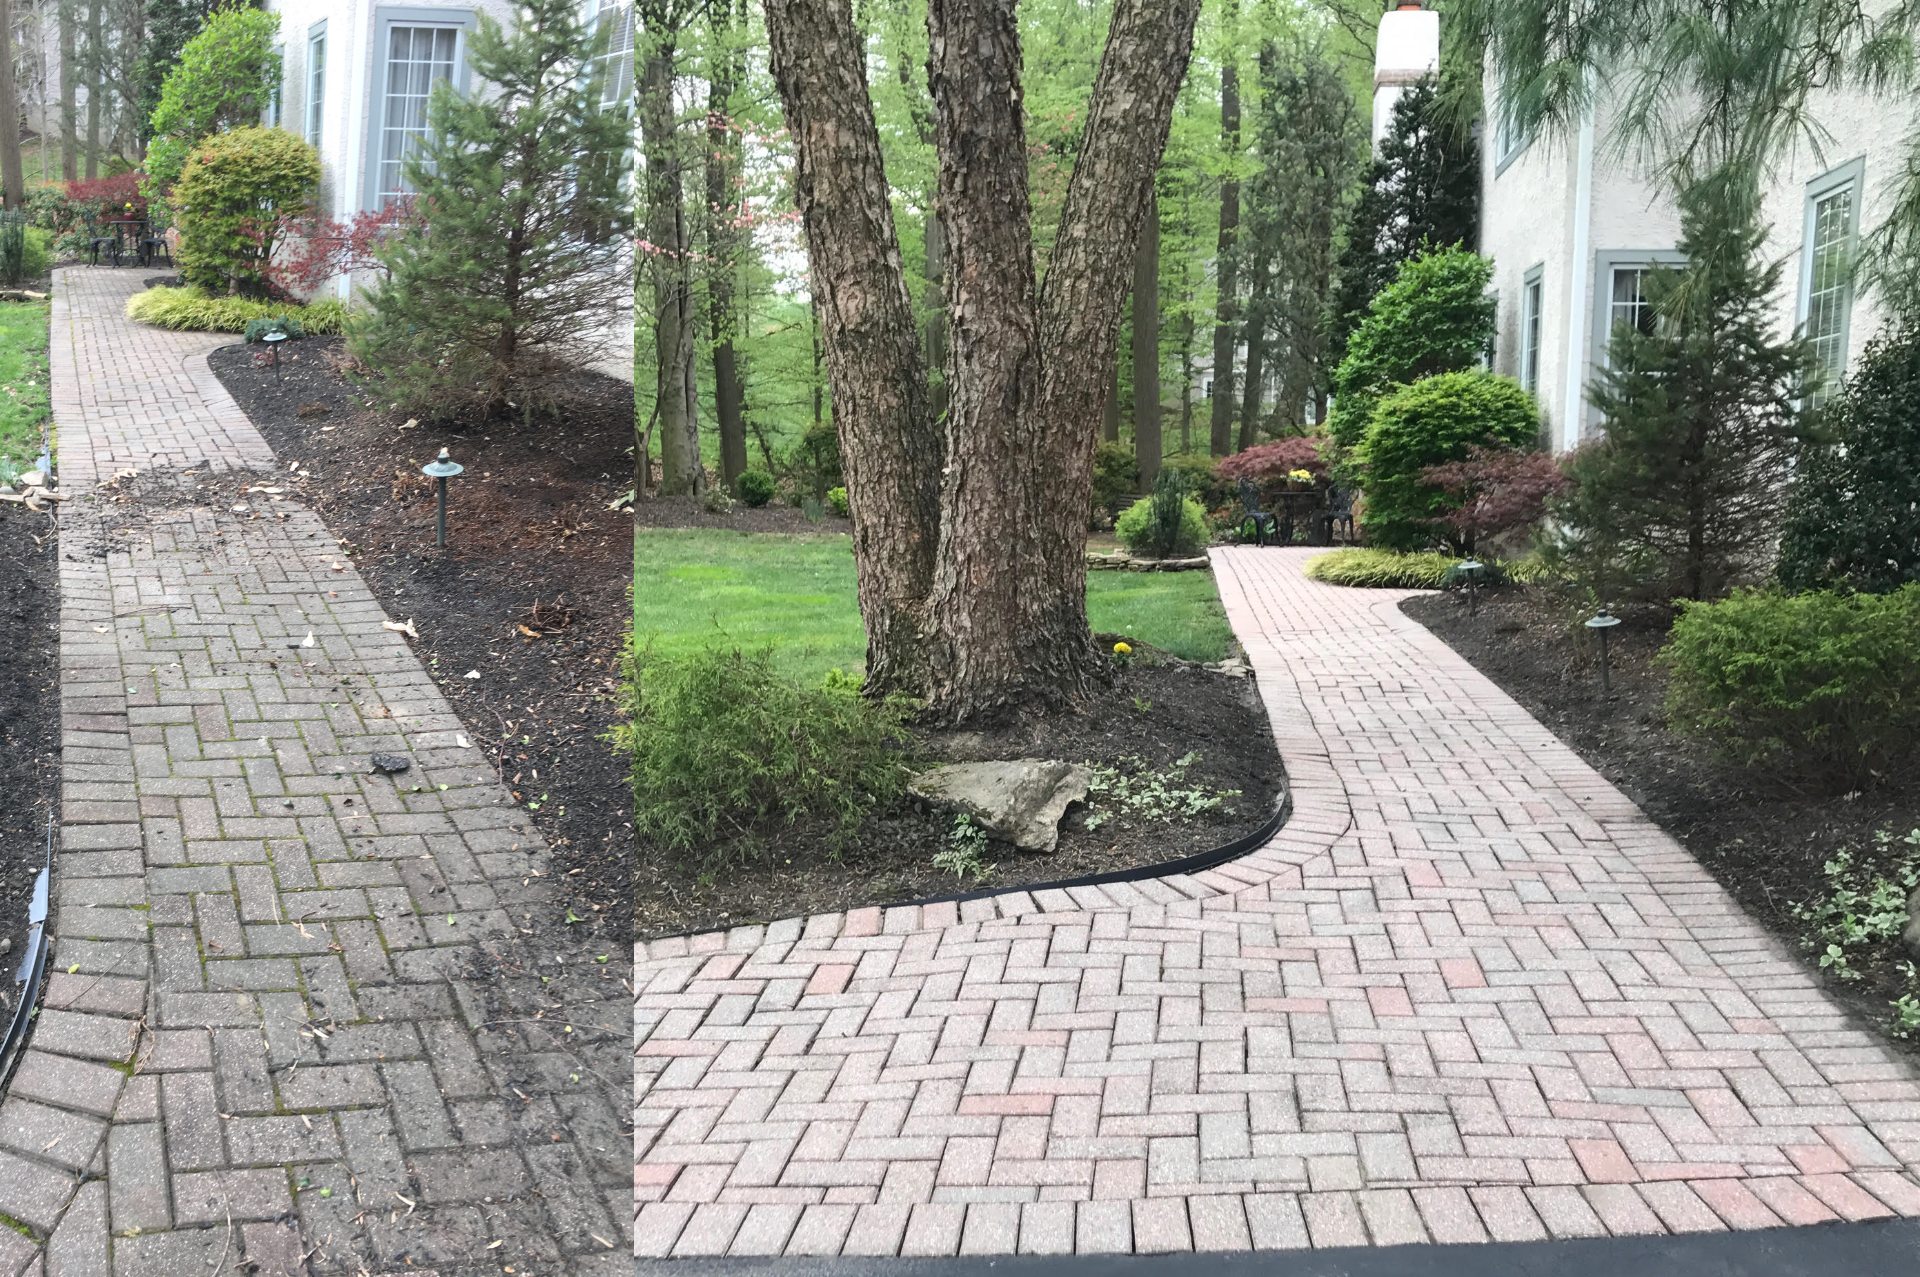 Before & After power washing photos